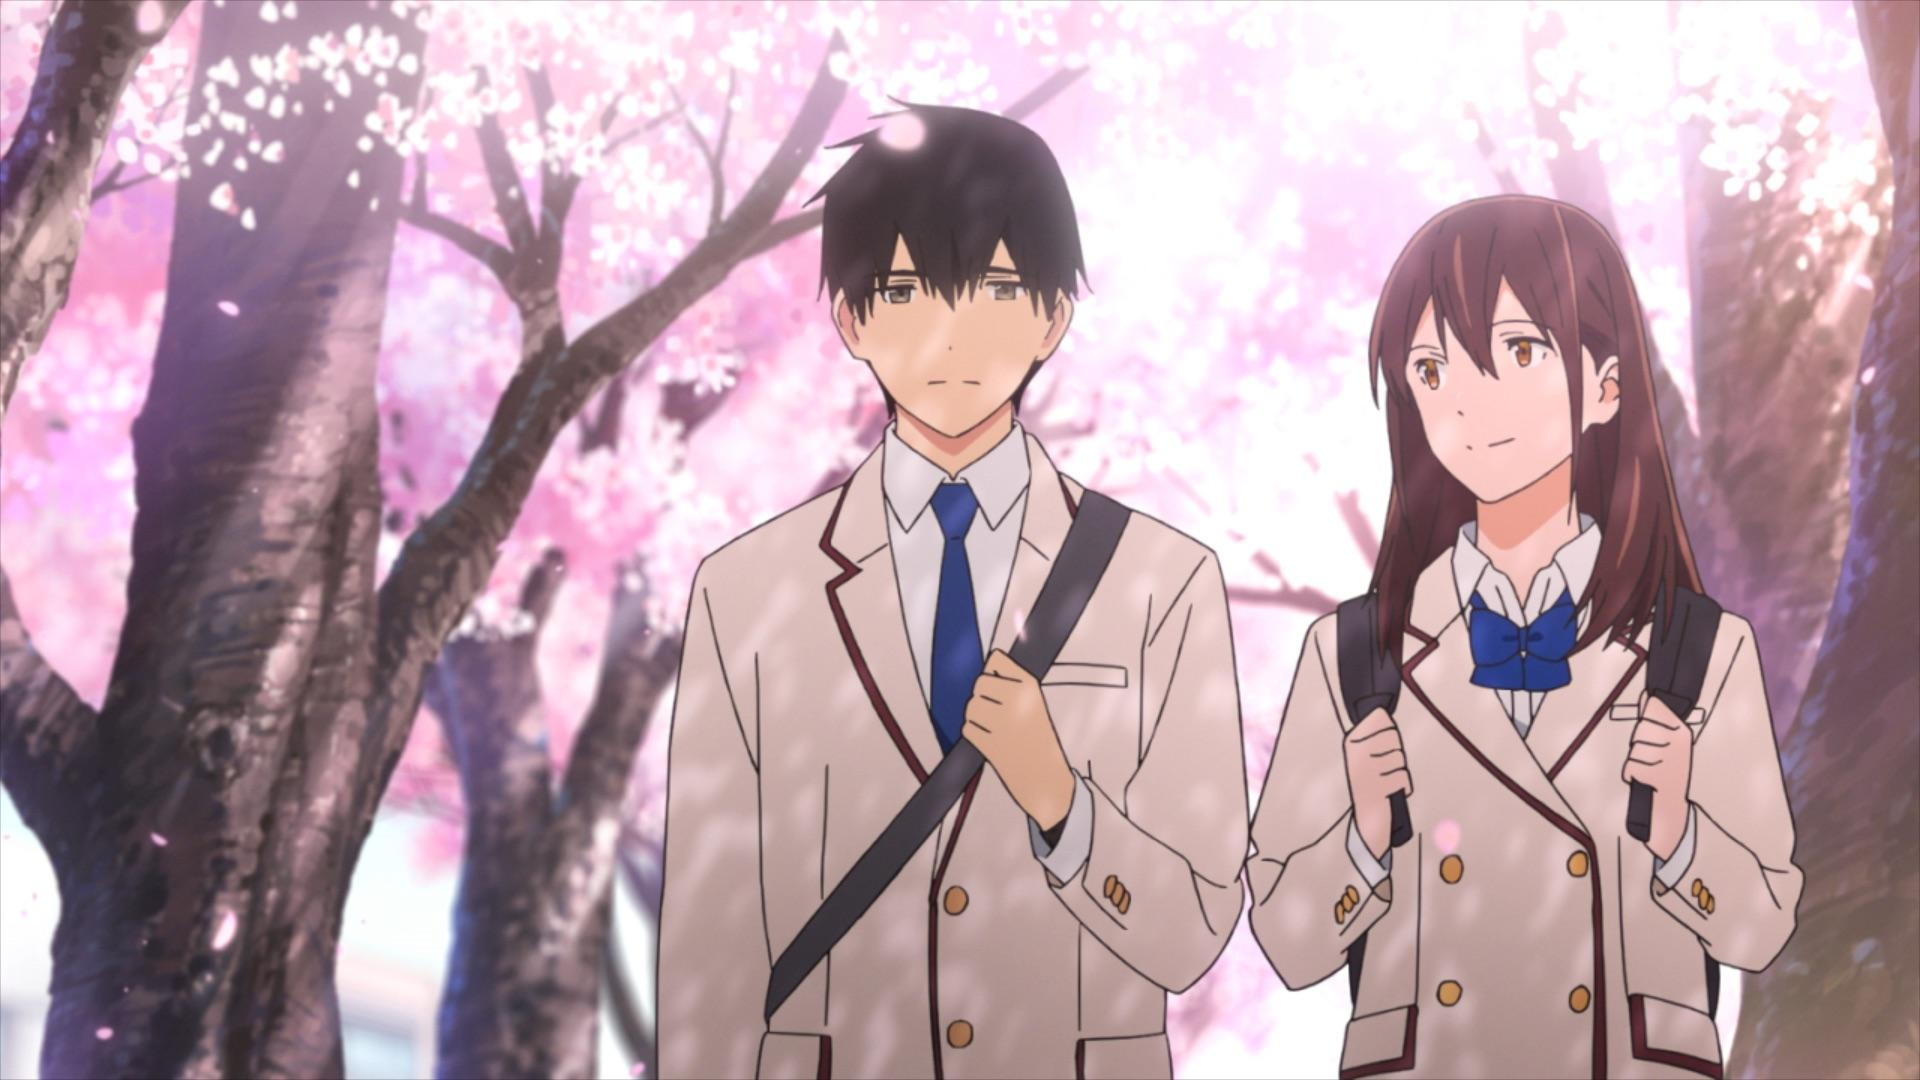 Emotional Anime Film I want to eat your pancreas Debuts in U.S. Theaters